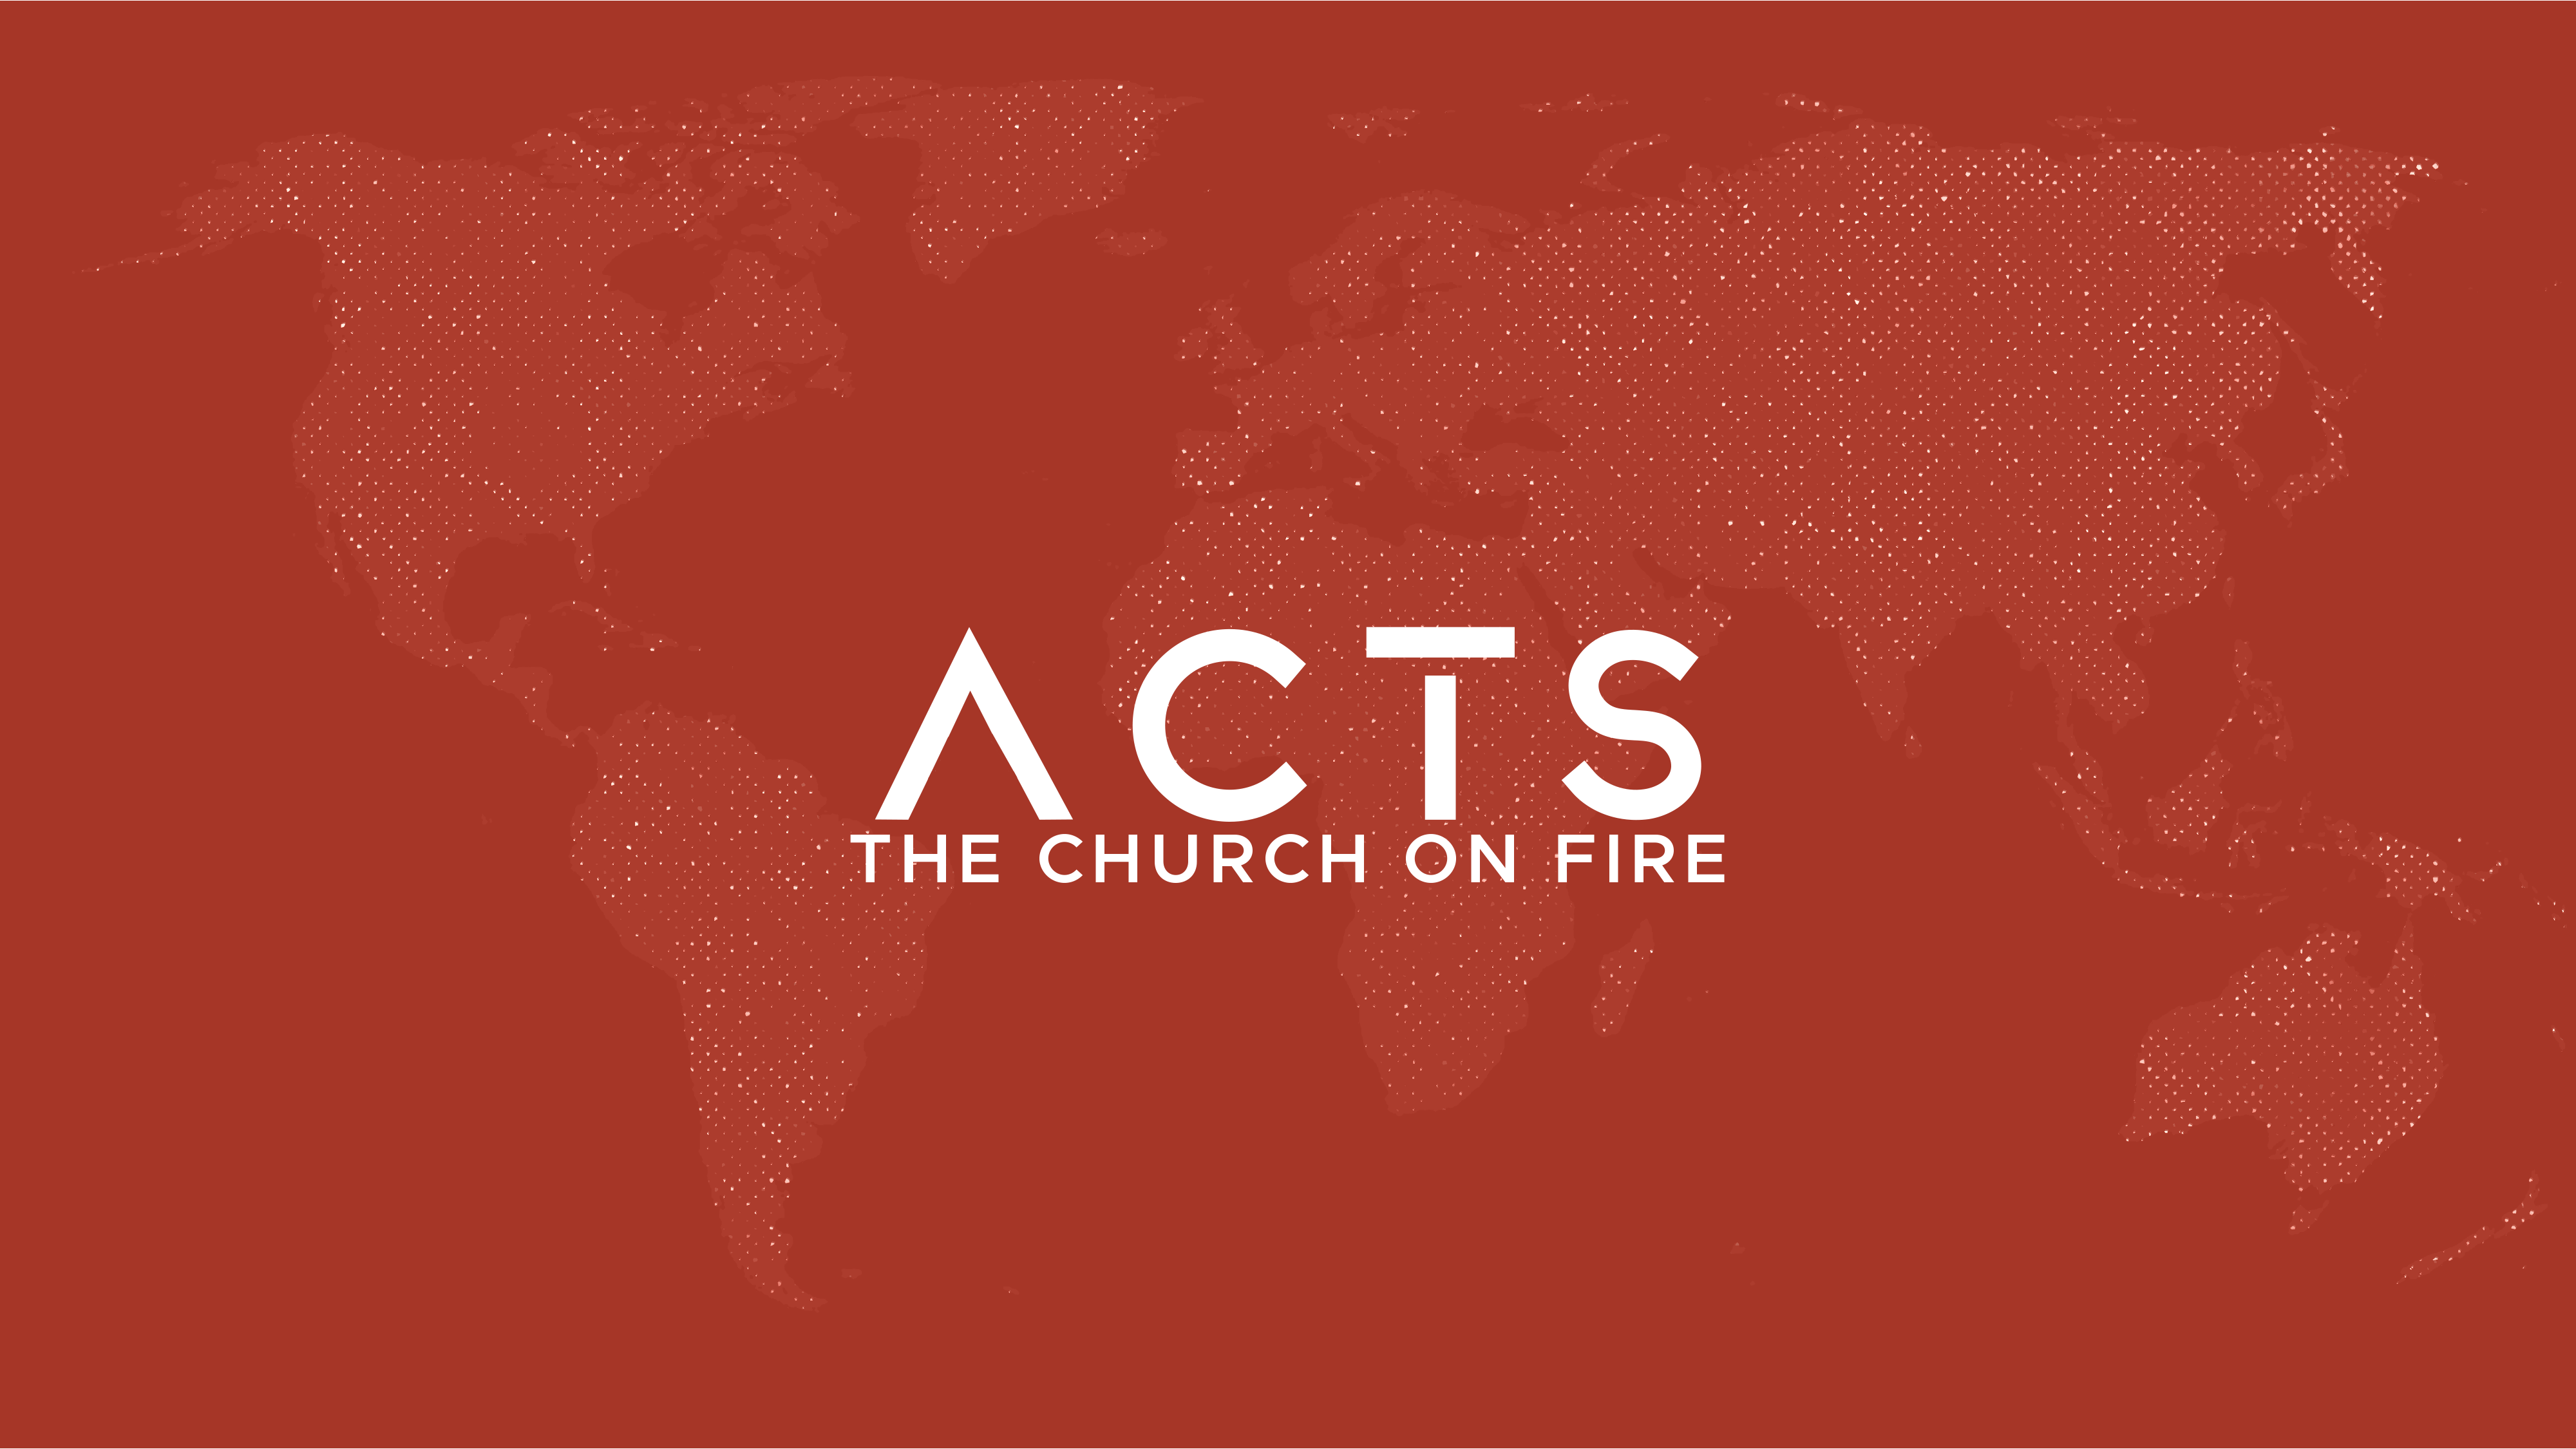 Acts - The Church On Fire